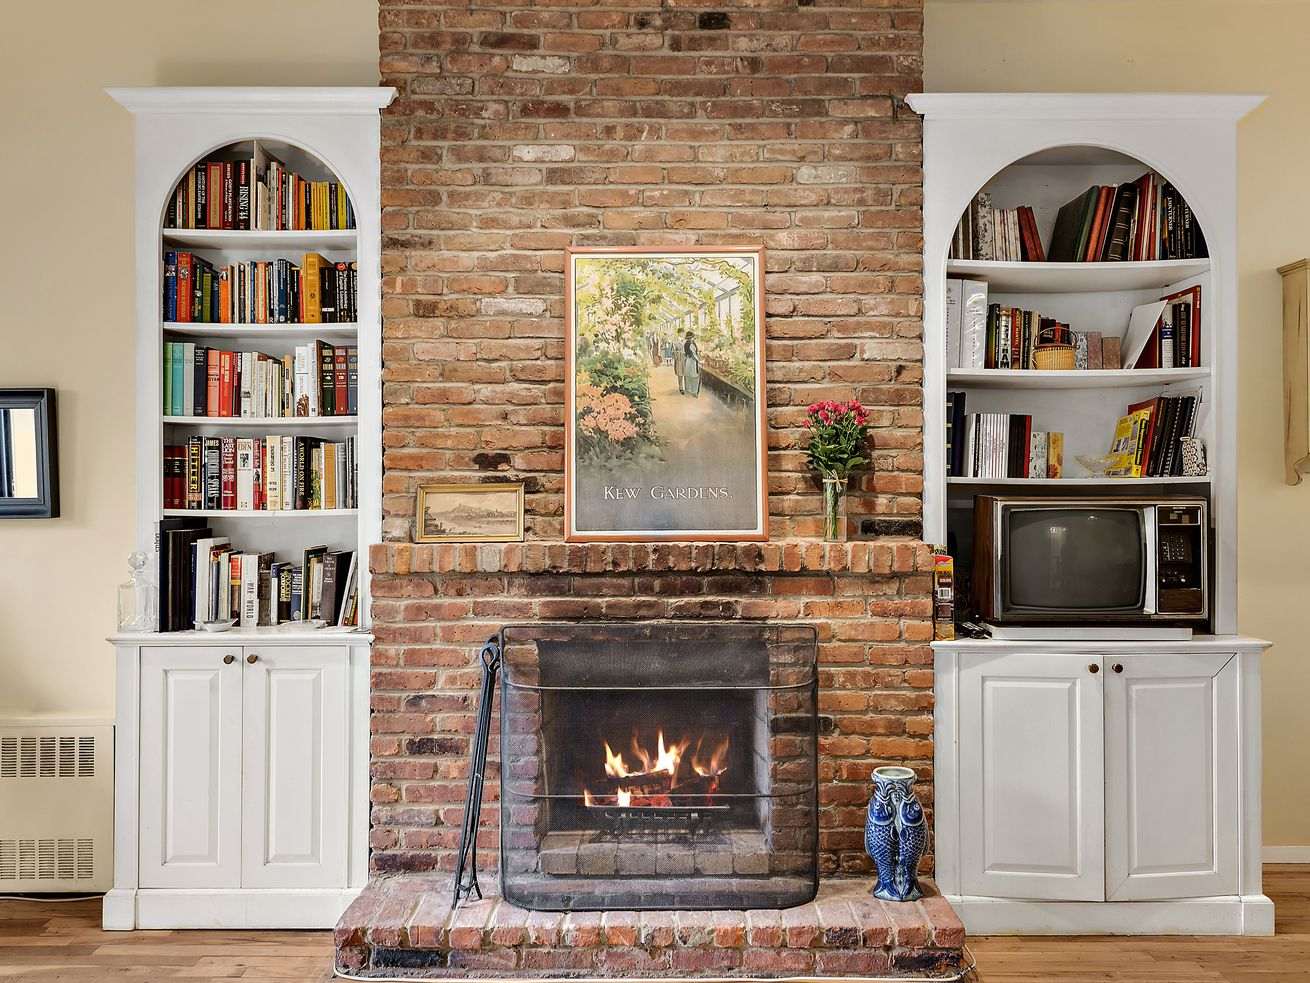 A wood-burning fireplace surrounded by a brick wall and two white built-in bookshelves.